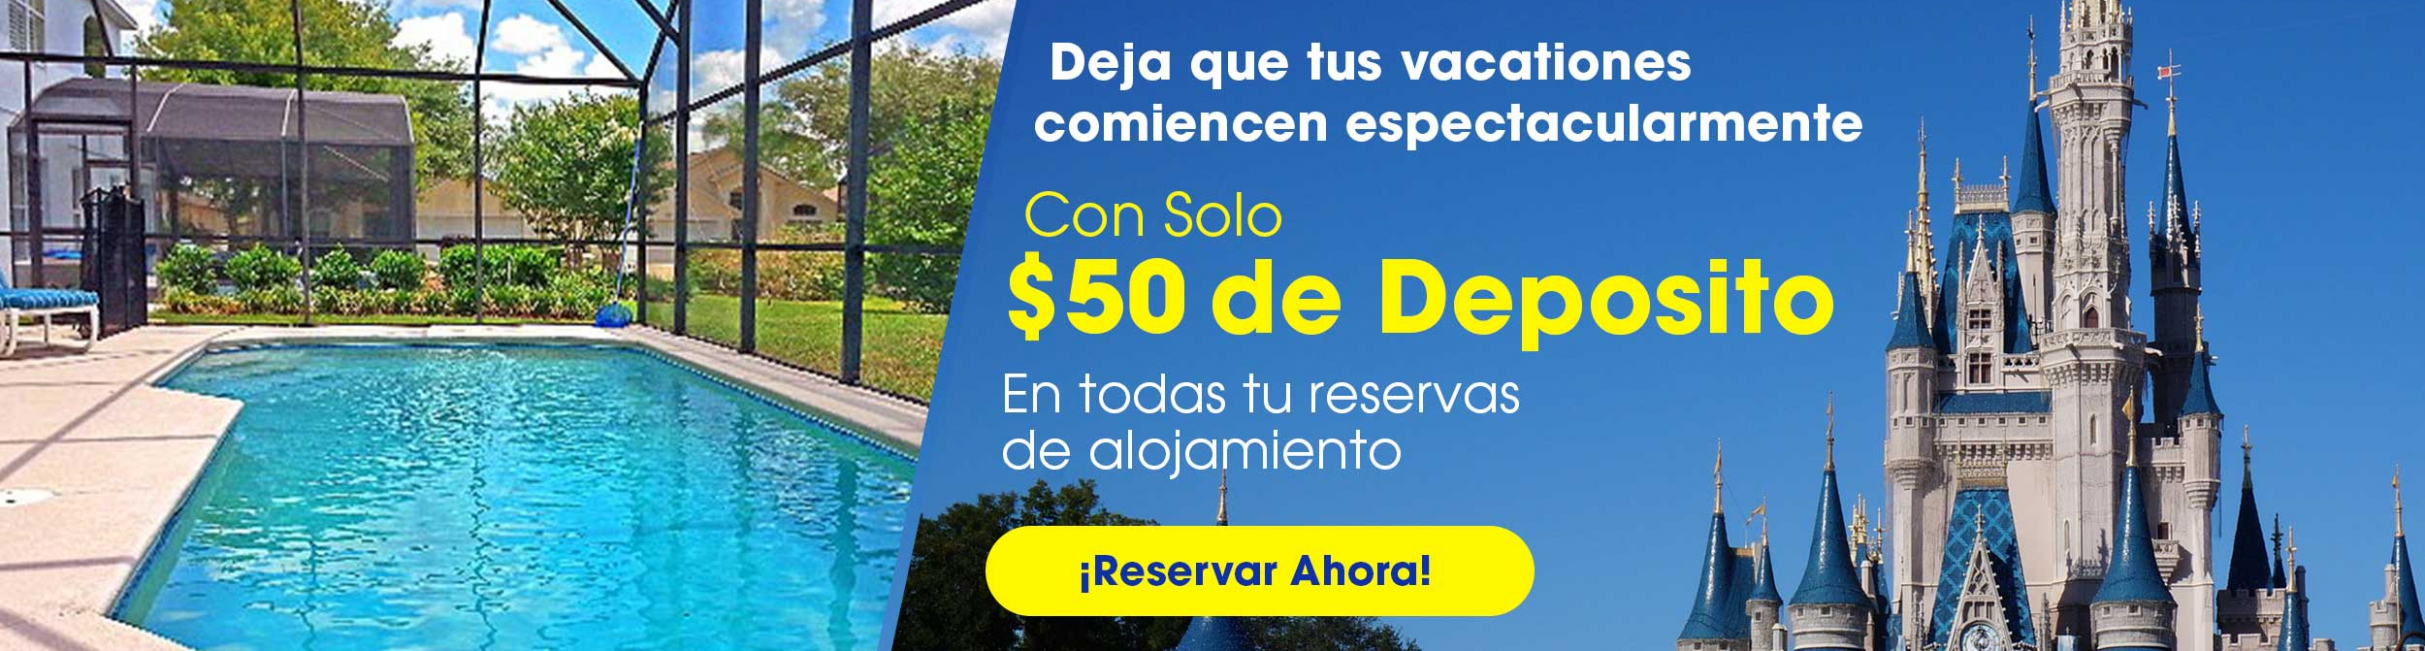 Slider-50-DepositeOrlando-Vacation-Espanol